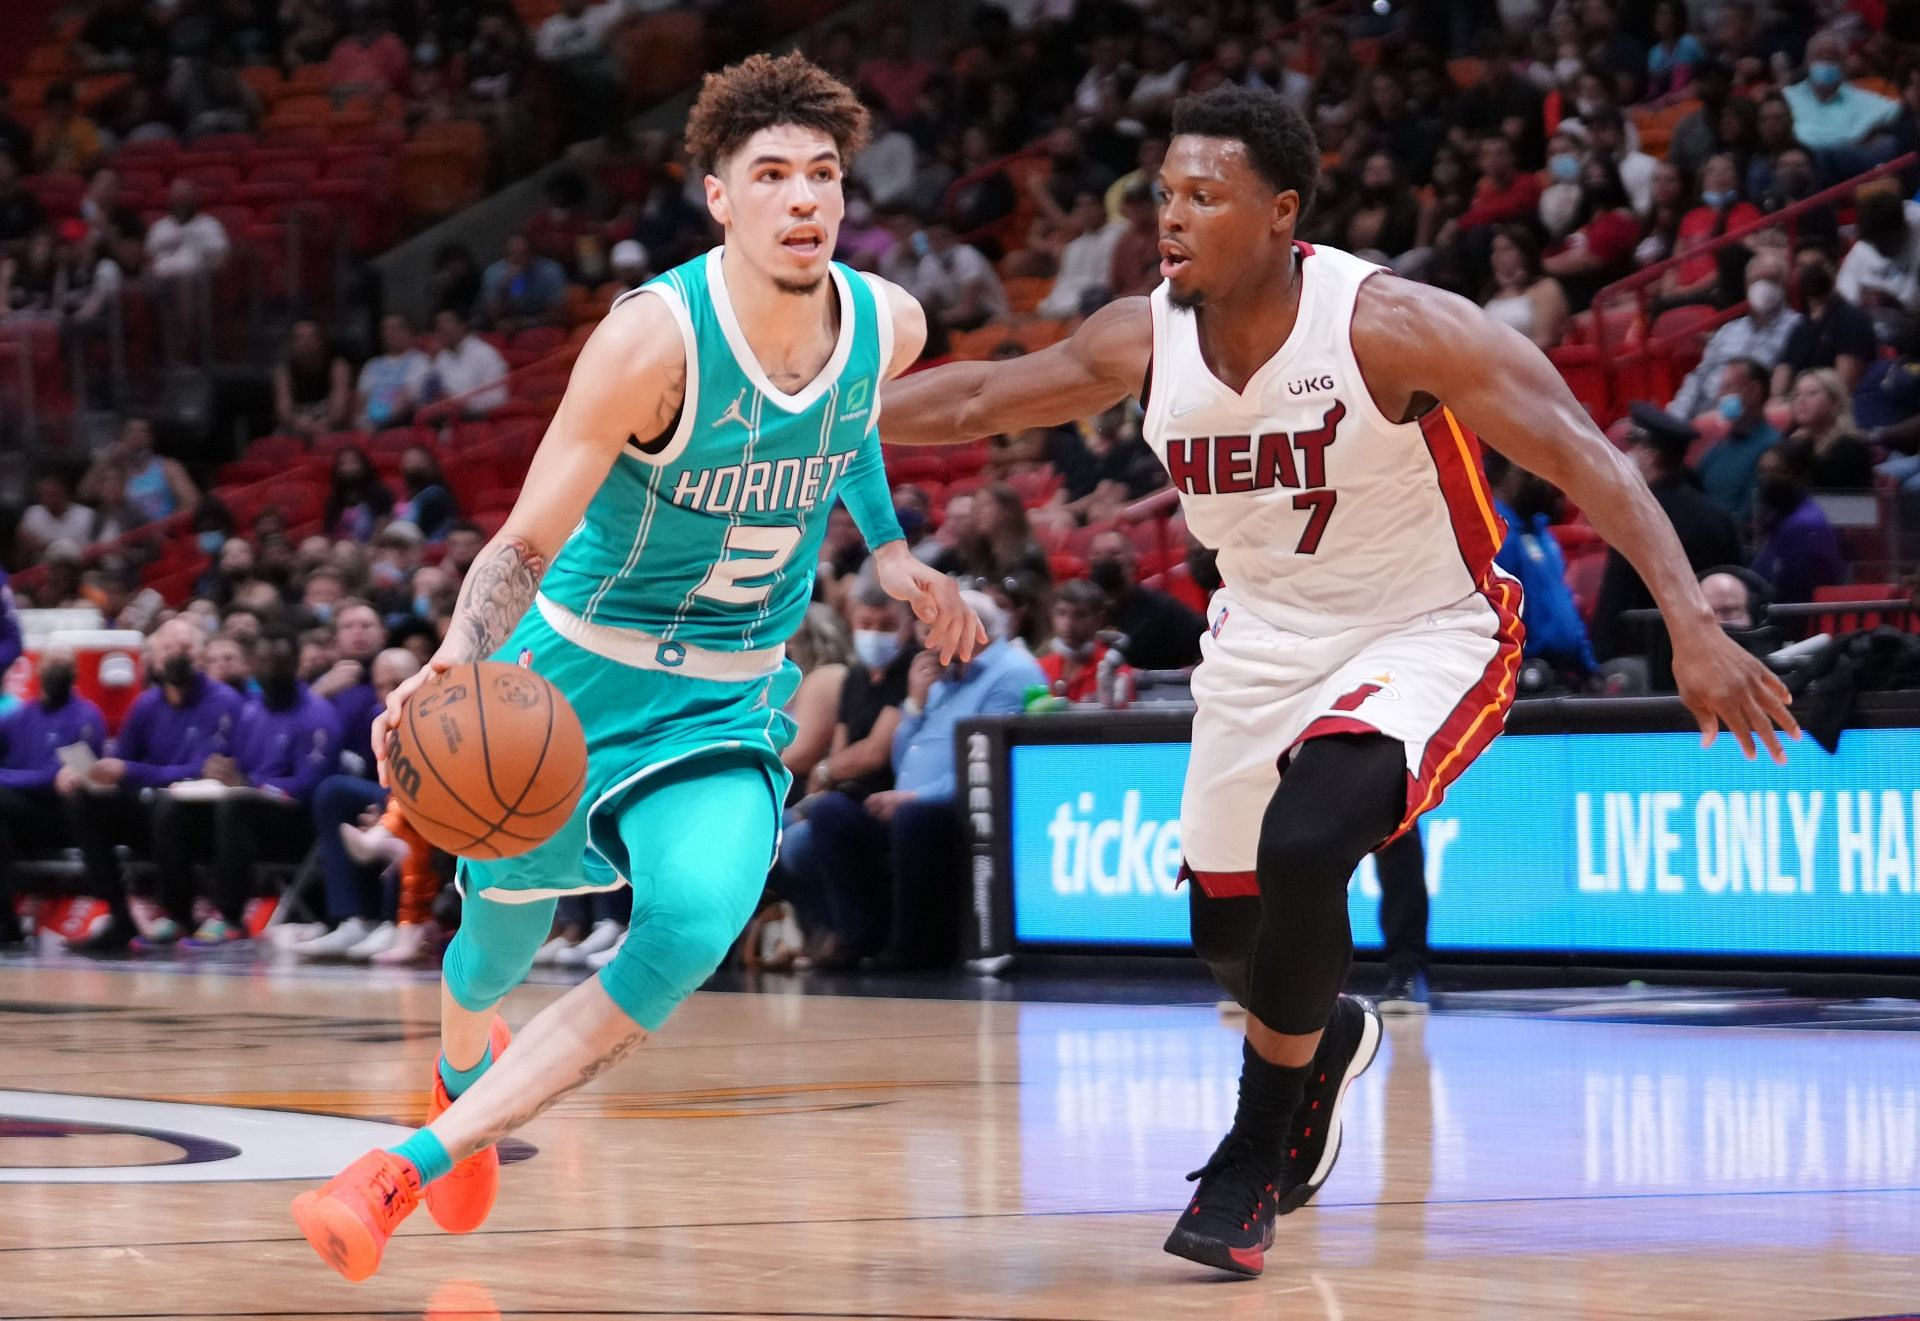 LaMelo Ball of Charlotte Hornets guarded by Kyle Lowry (#7) of the Miami Heat